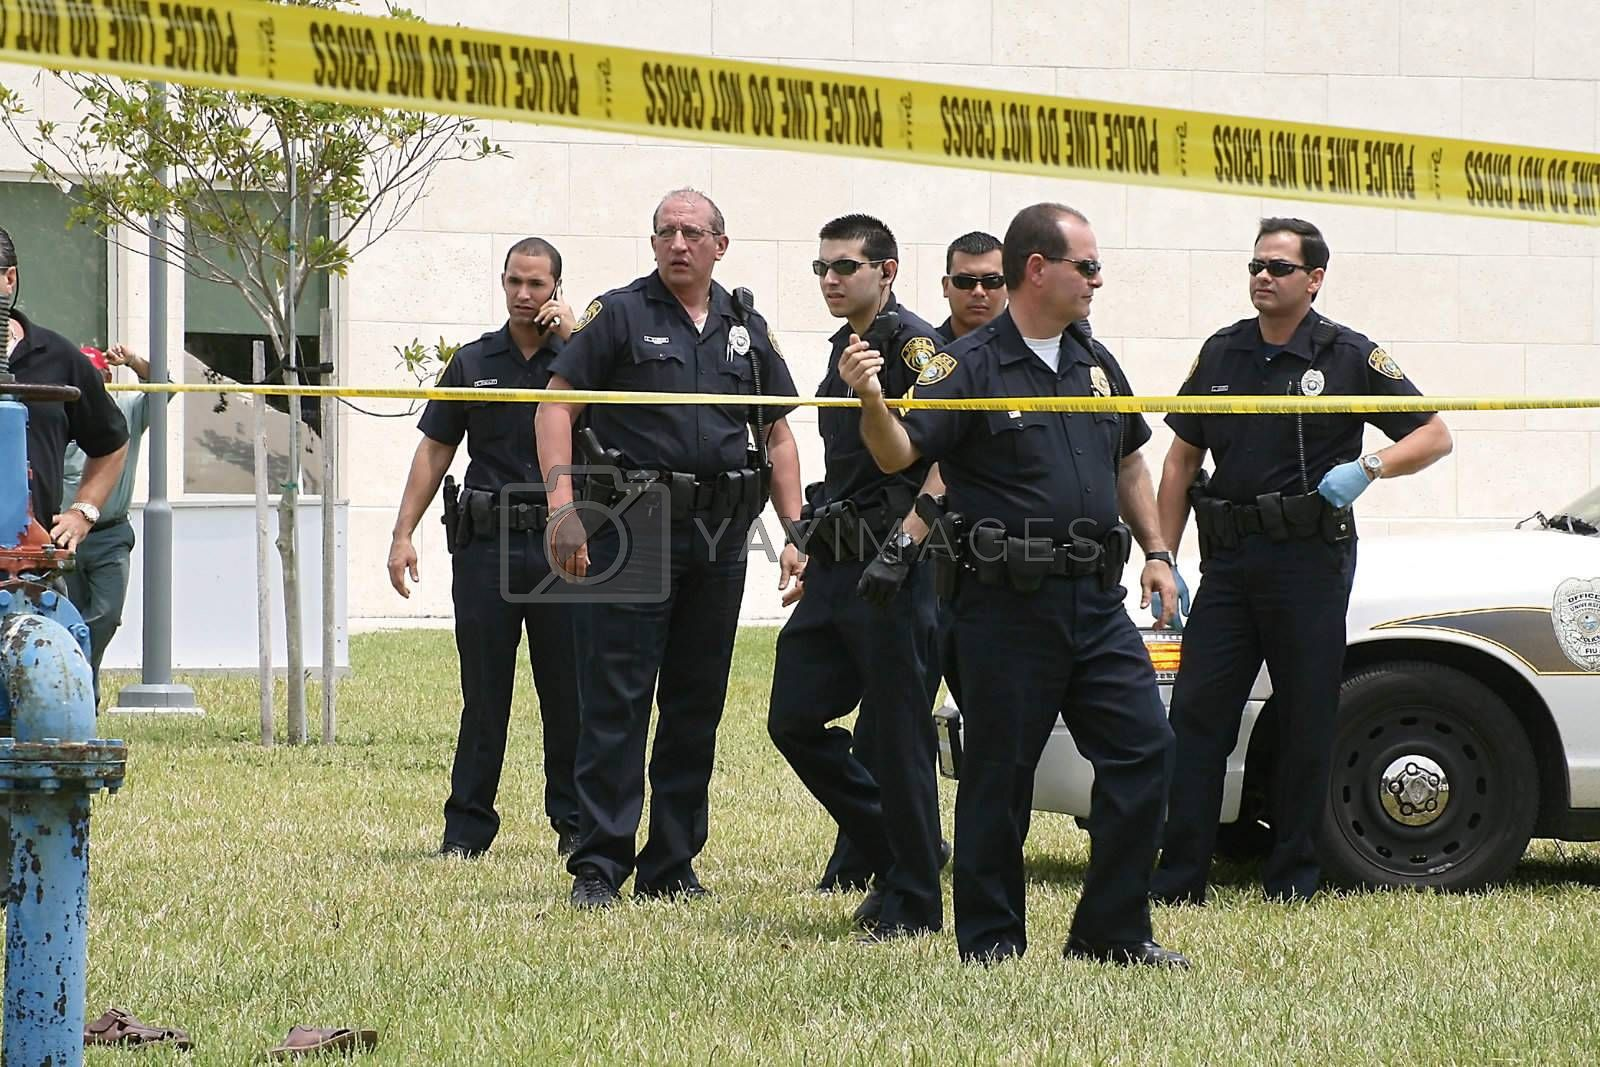 Police on a university campus gather after a car chase ends in a crash.